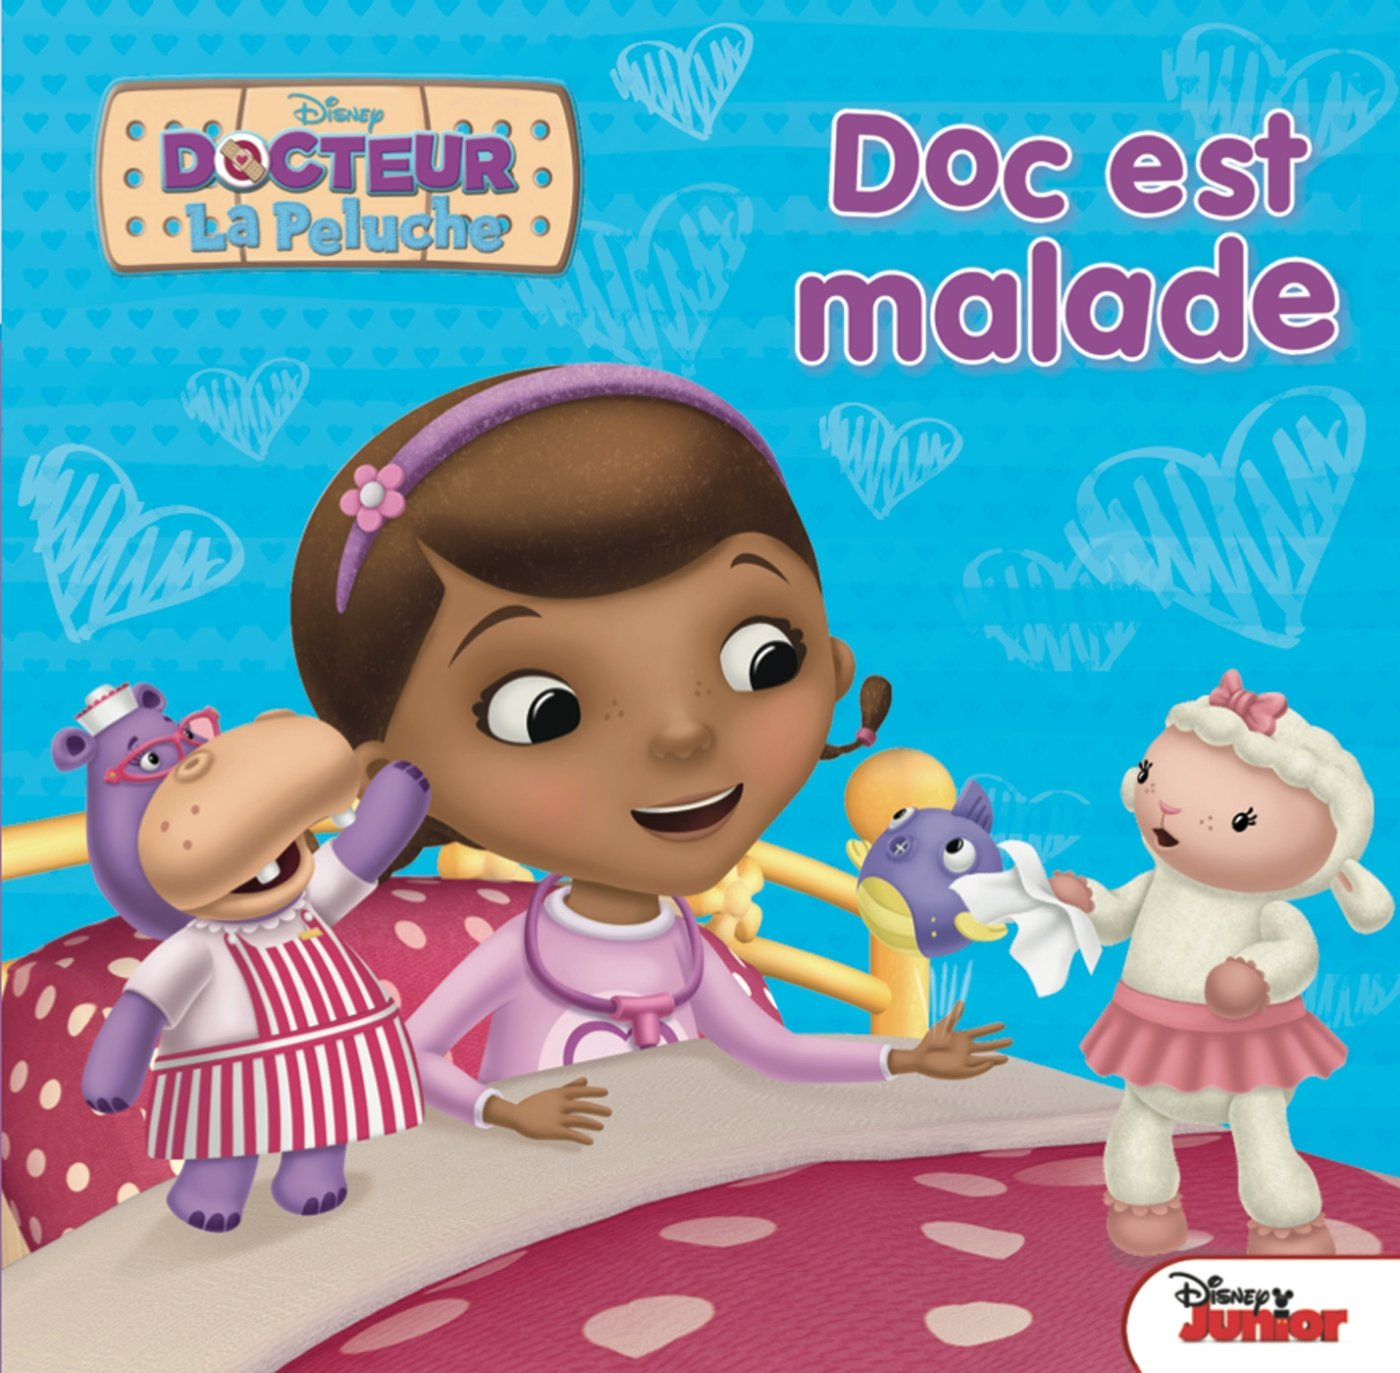 Docteur la Peluche, Disney Junior, GRAND ALBUM: 9782012308824: Amazon.com: Books